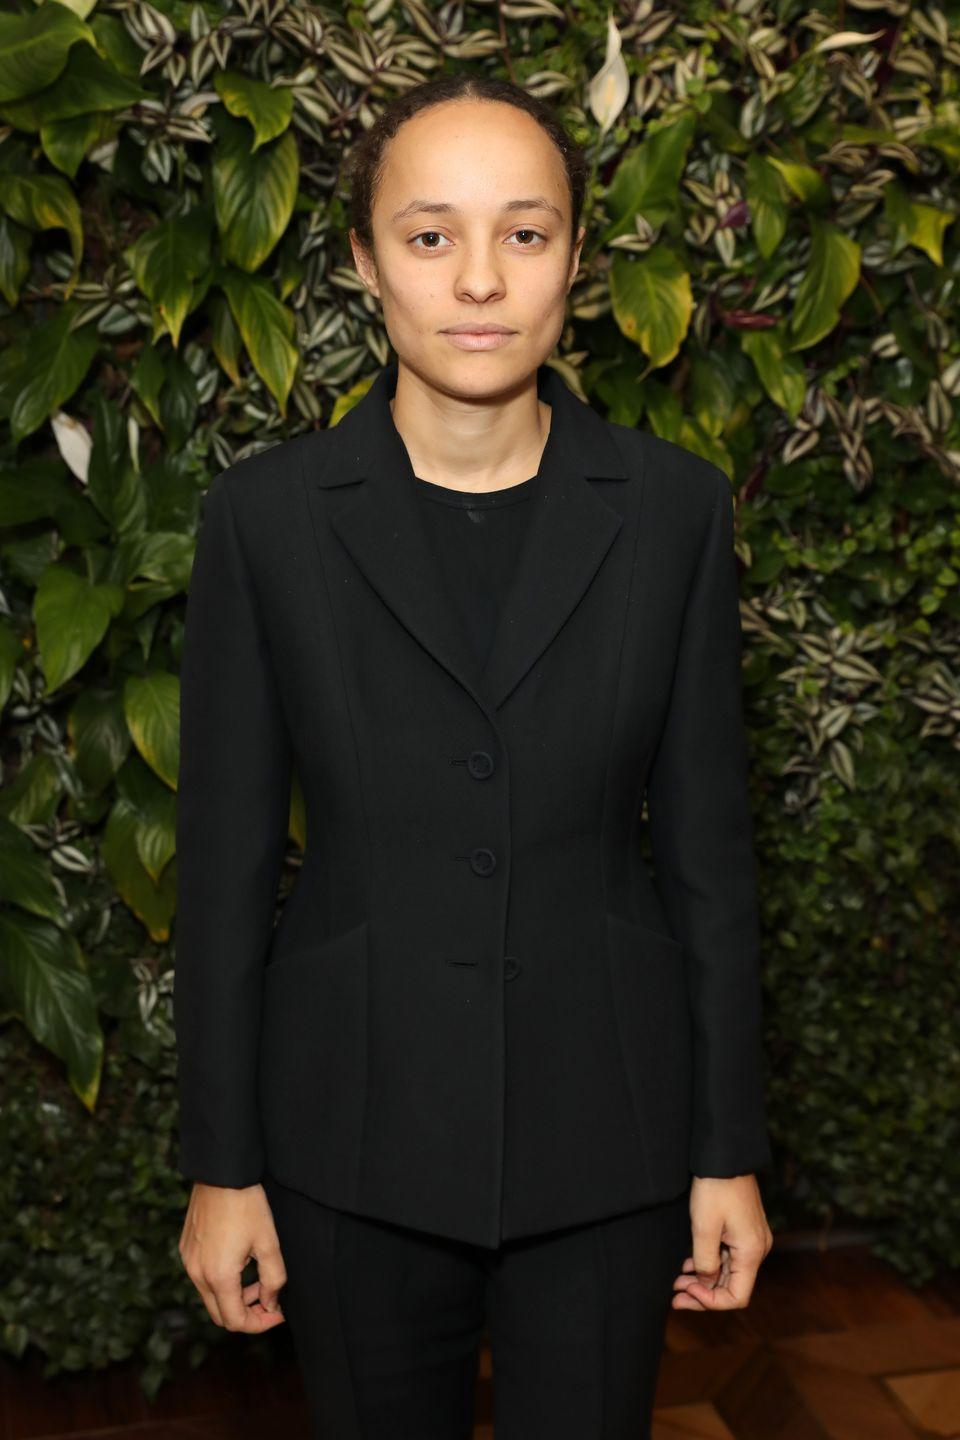 <p><strong>Brand:</strong> Wales Bonner</p><p>Launched in 2014, her eponymous label started as a menswear brand and later ventured into womenswear. The clothing is inspired by European and African history, and the tailoring is basically PERFECTION. (As you can probably tell from her impeccable black blazer in this shot.) </p>